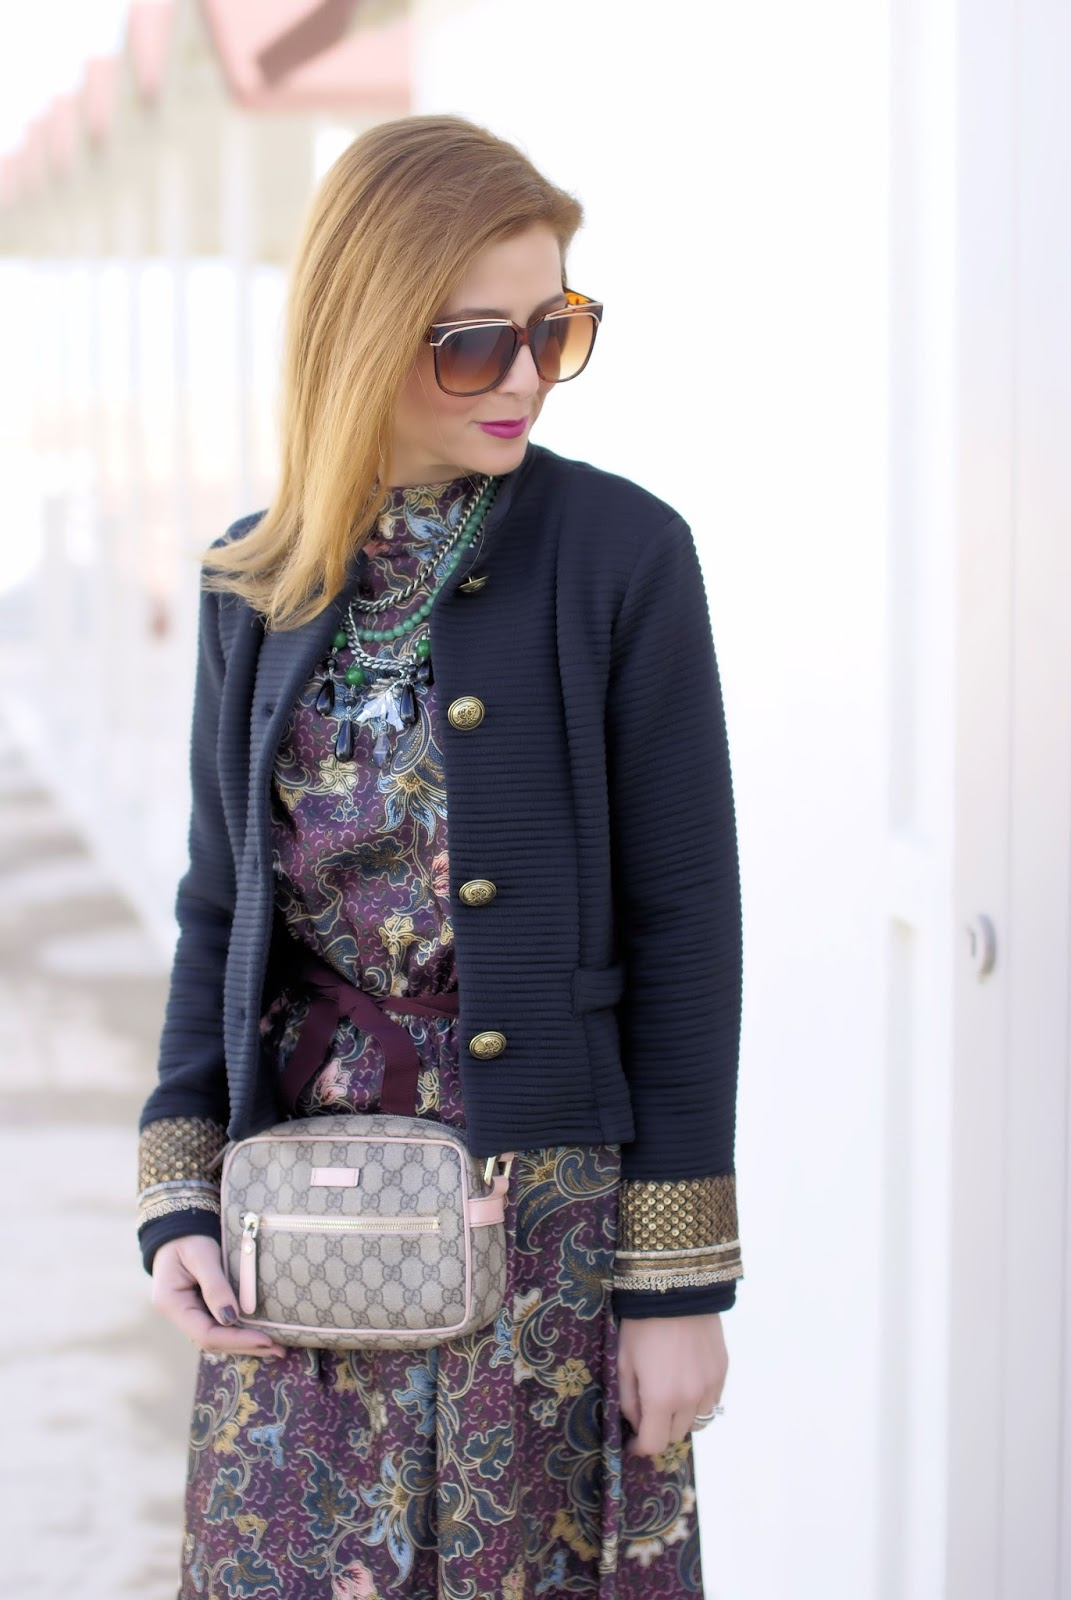 70s style floral dress Vicolo, Dixie military jacket and Gucci bag on Fashion and Cookies fashion blog, fashion blogger style